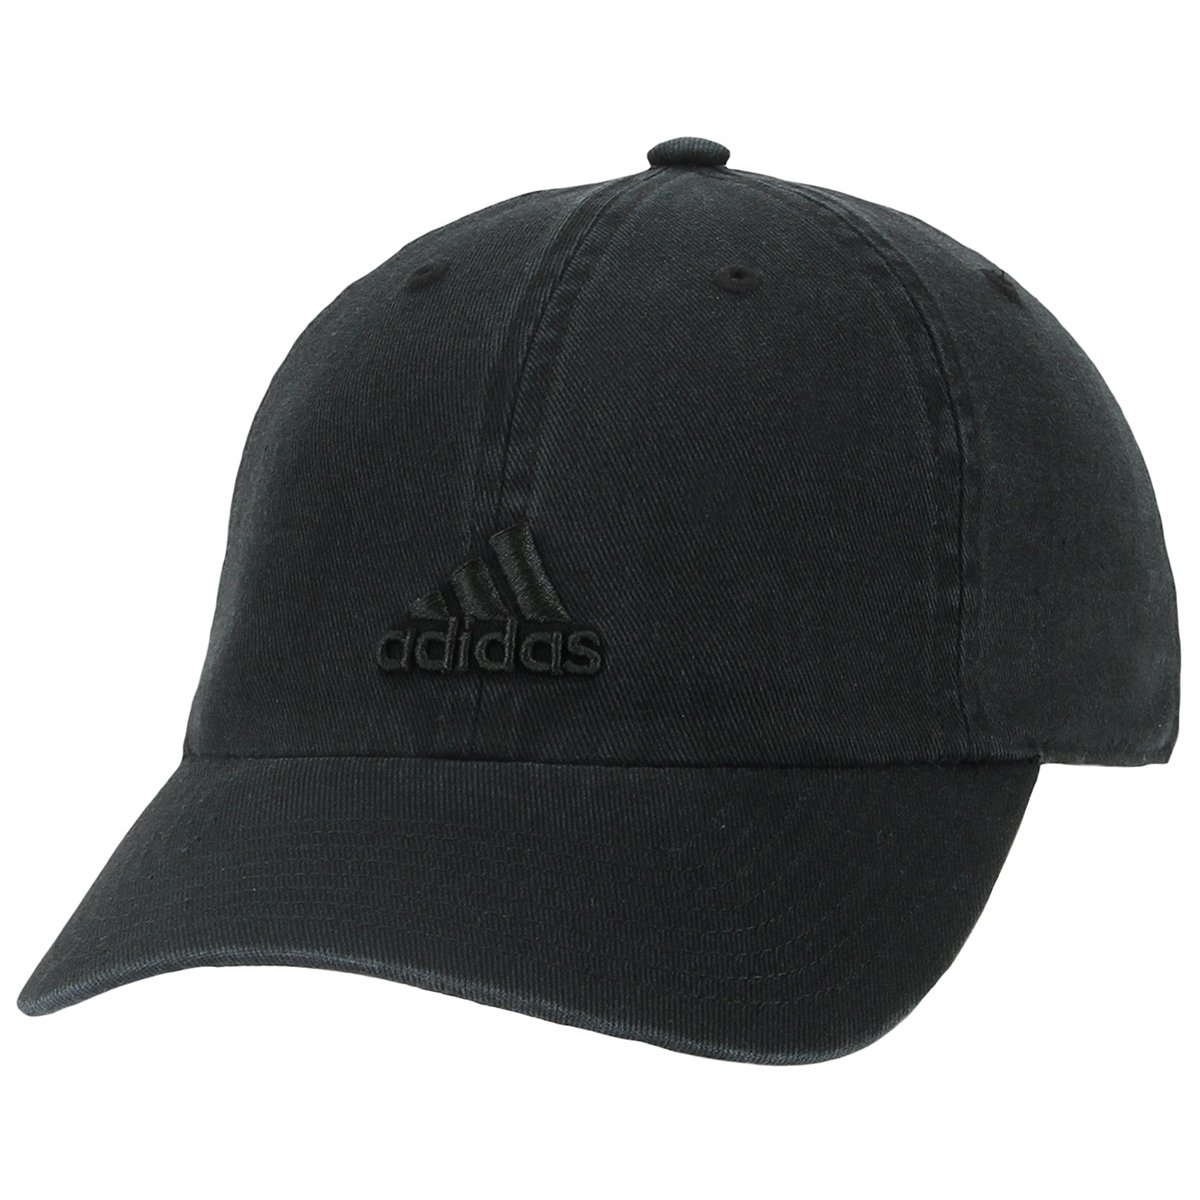 factory price 100% top quality outlet store sale Adidas Womens Saturday Cap, Black/Black, One Size: Amazon.in ...